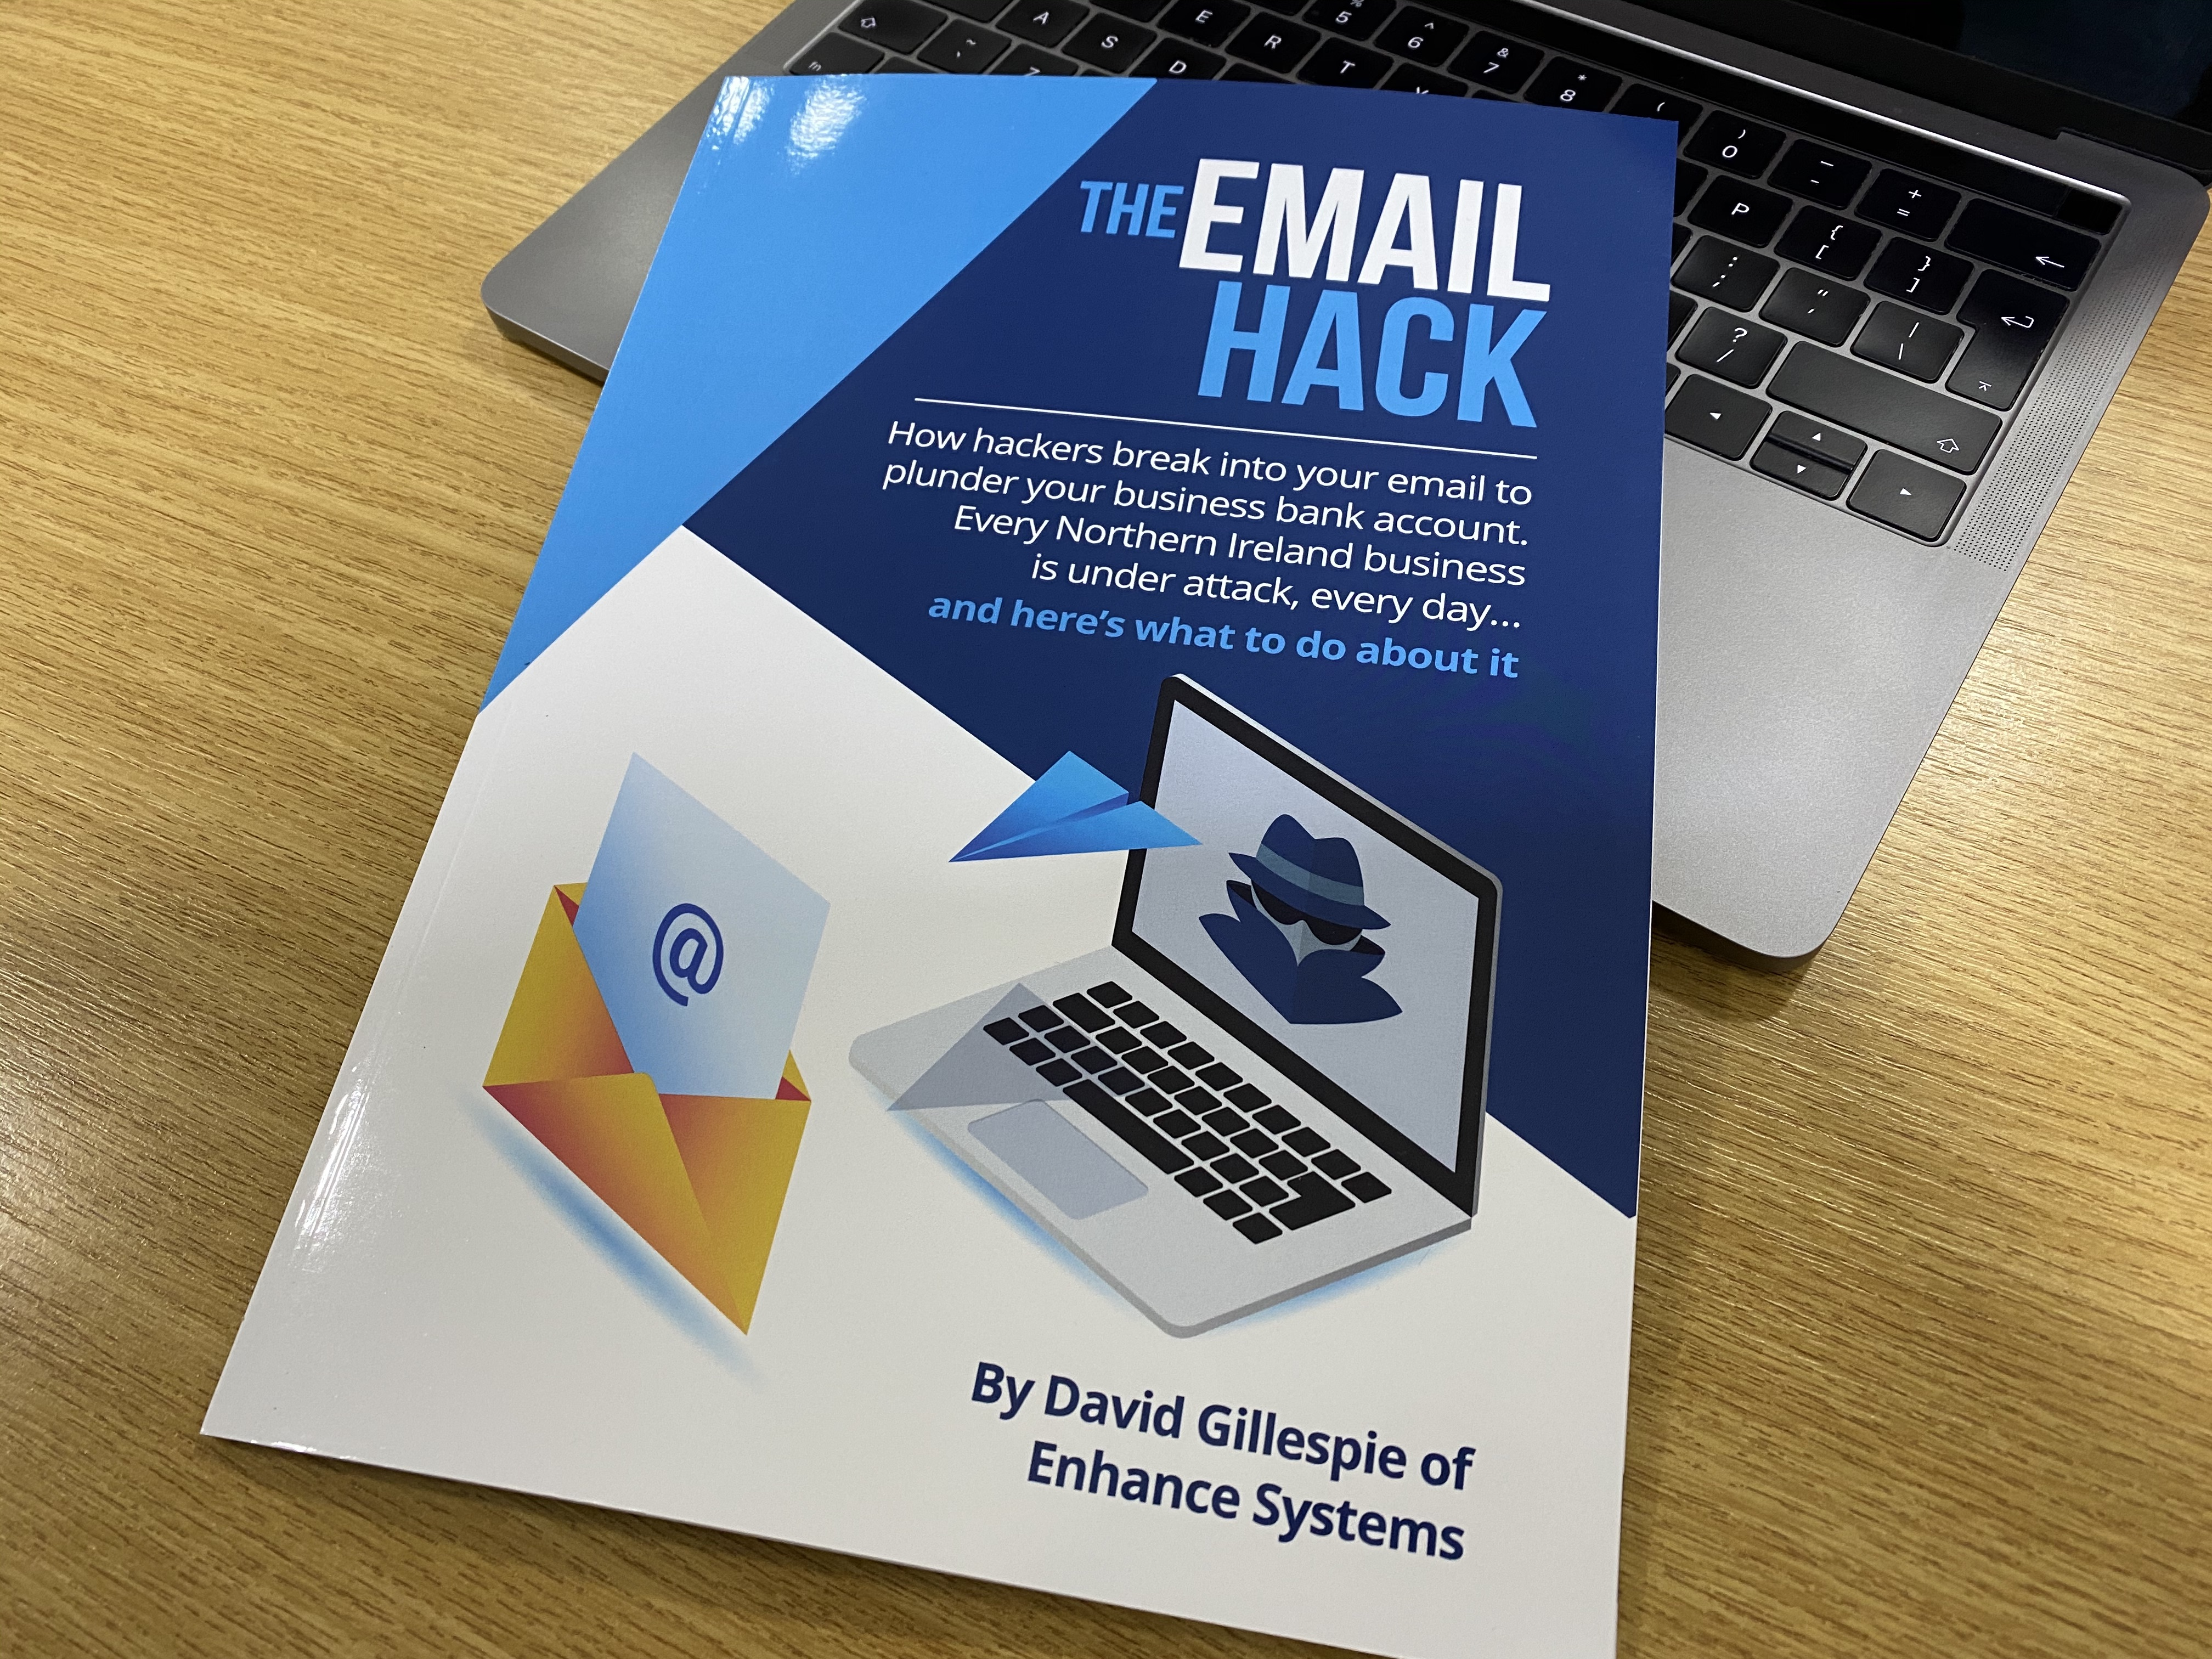 Free Book: The Email Hack